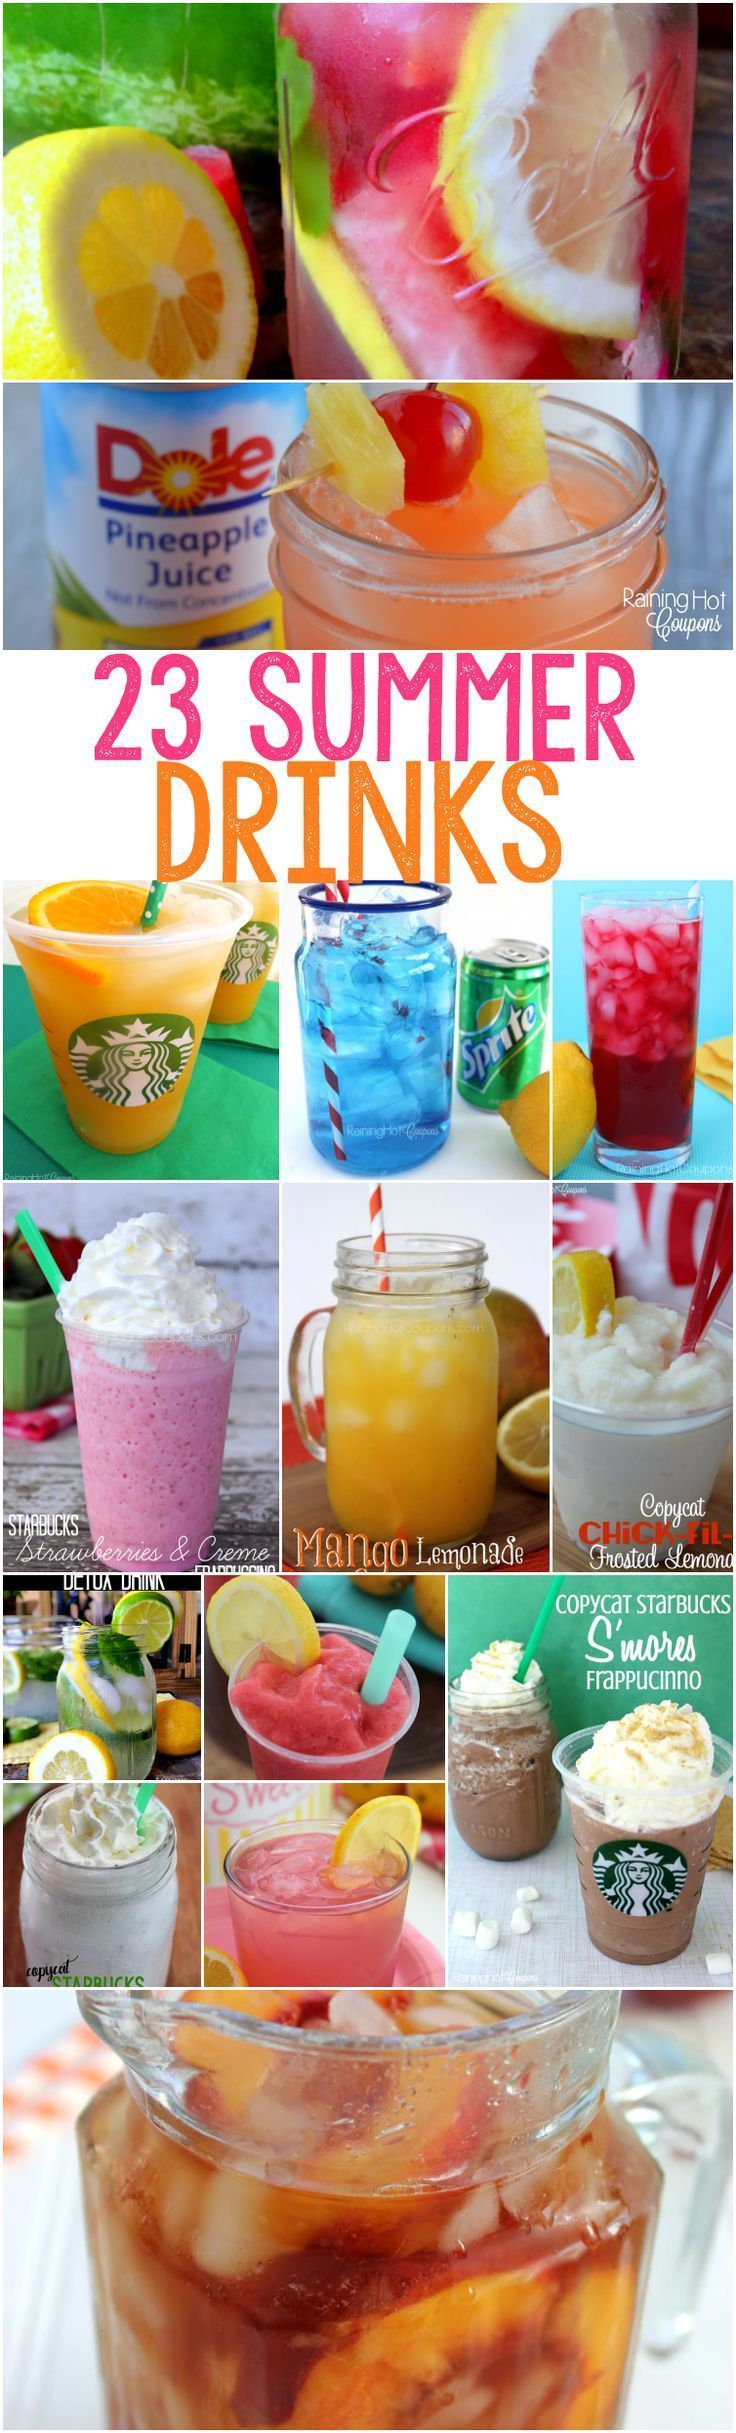 329 best images about Drink Recipes on Pinterest | Peach lemonade ...